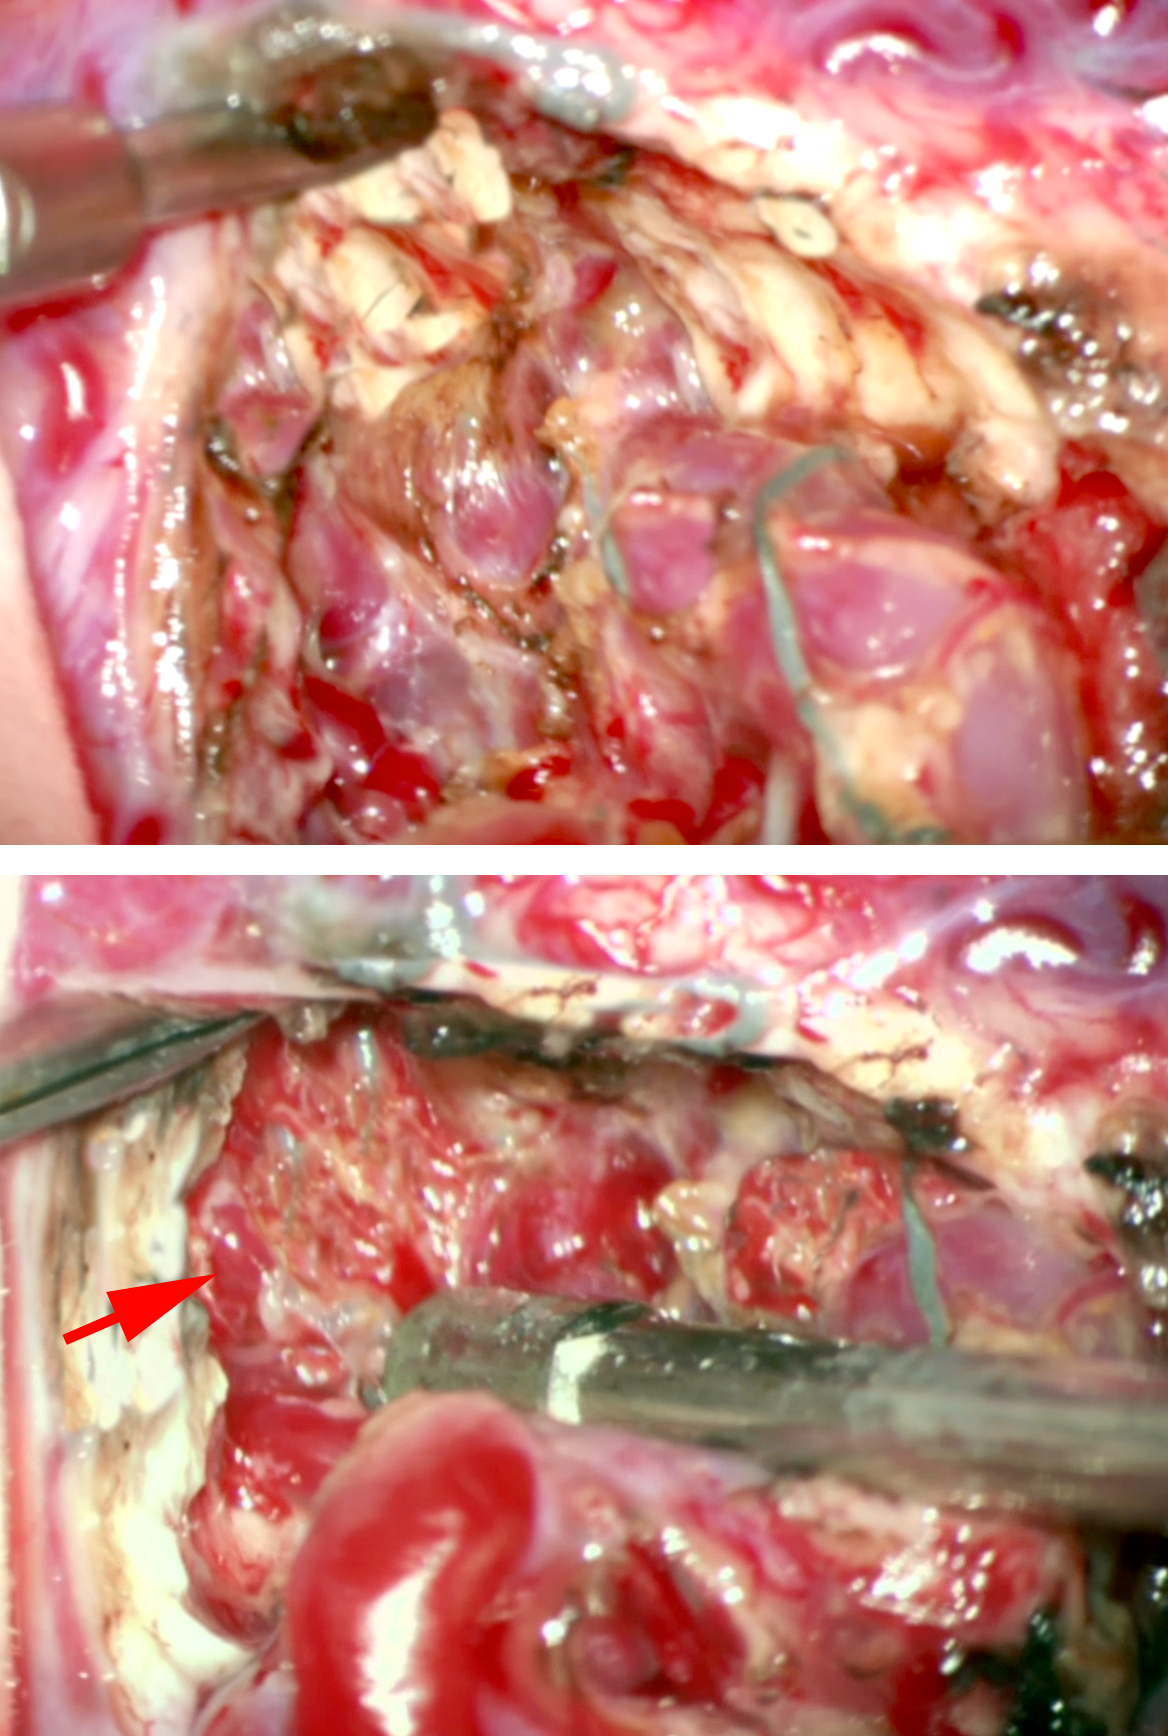 Figure 7: The compact nidus of the AVM allowed me to dissect on the walls of the nidus without significant bleeding (top). The thin-walled white mater perforators at the depth of the dissection cavity are demonstrated (bottom photo-arrow).